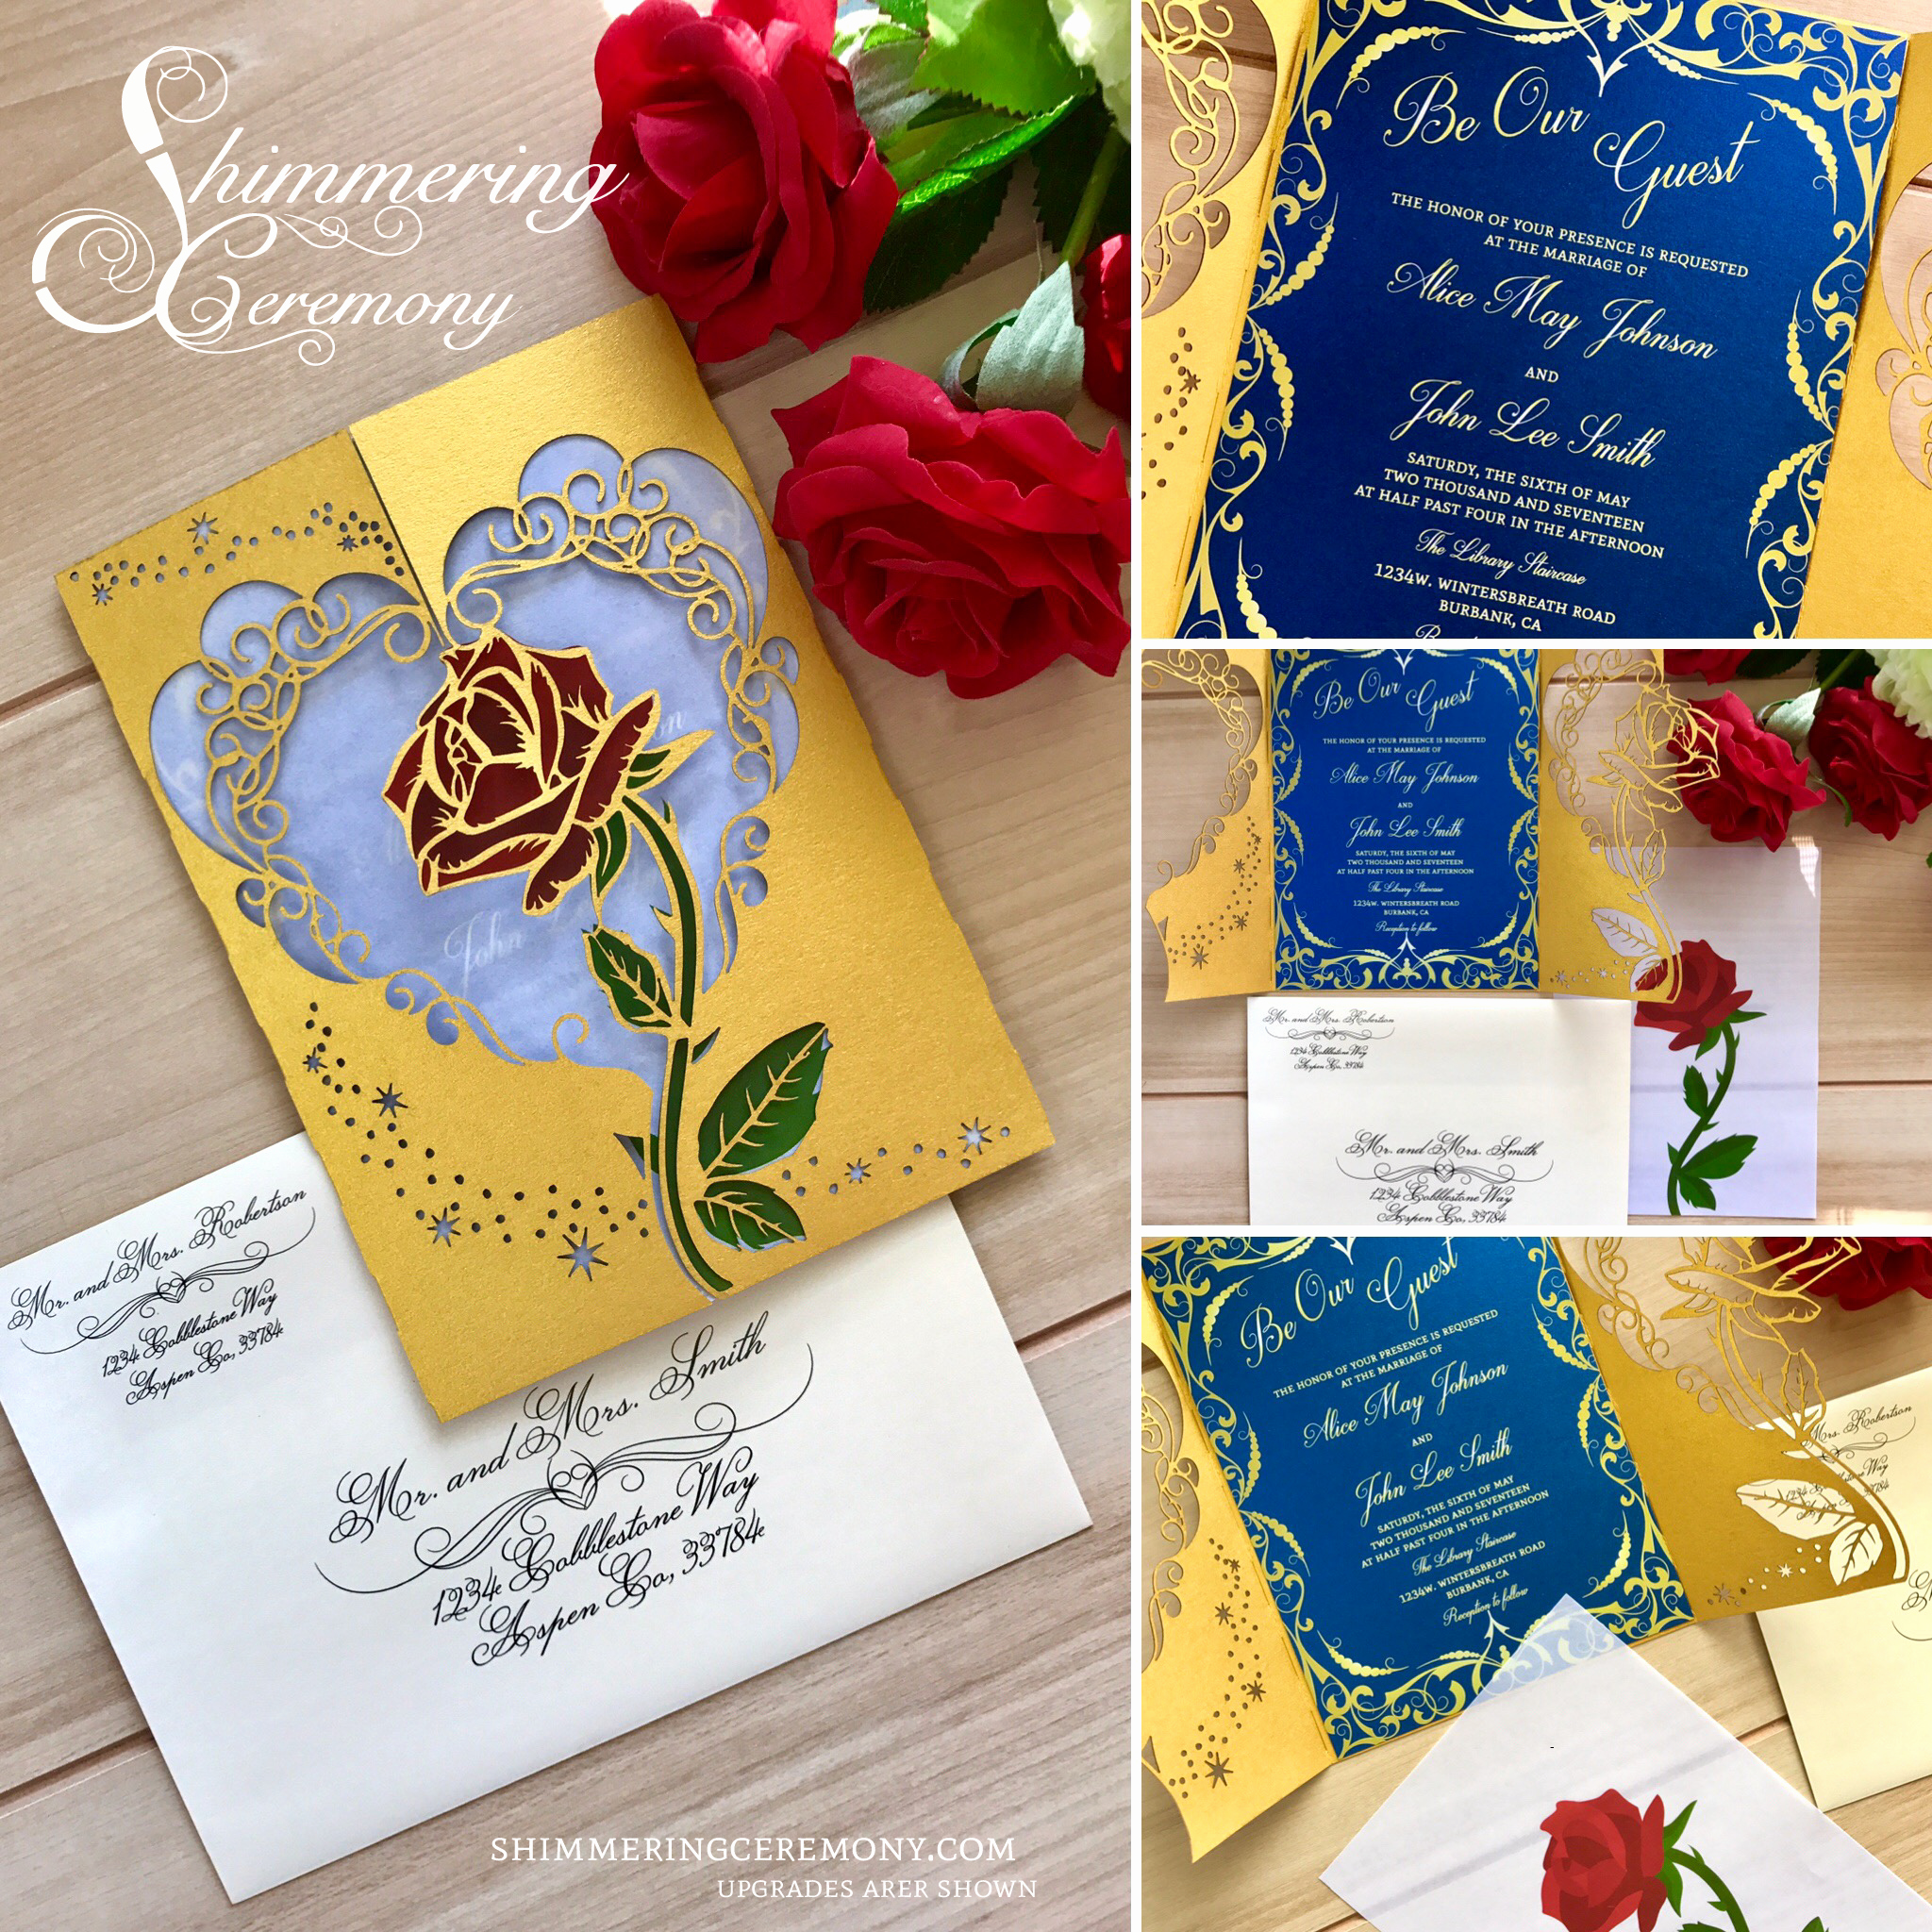 Beauty and the Beast Invitation New Beauty and the Beast Inspired Wedding Invitation Laser